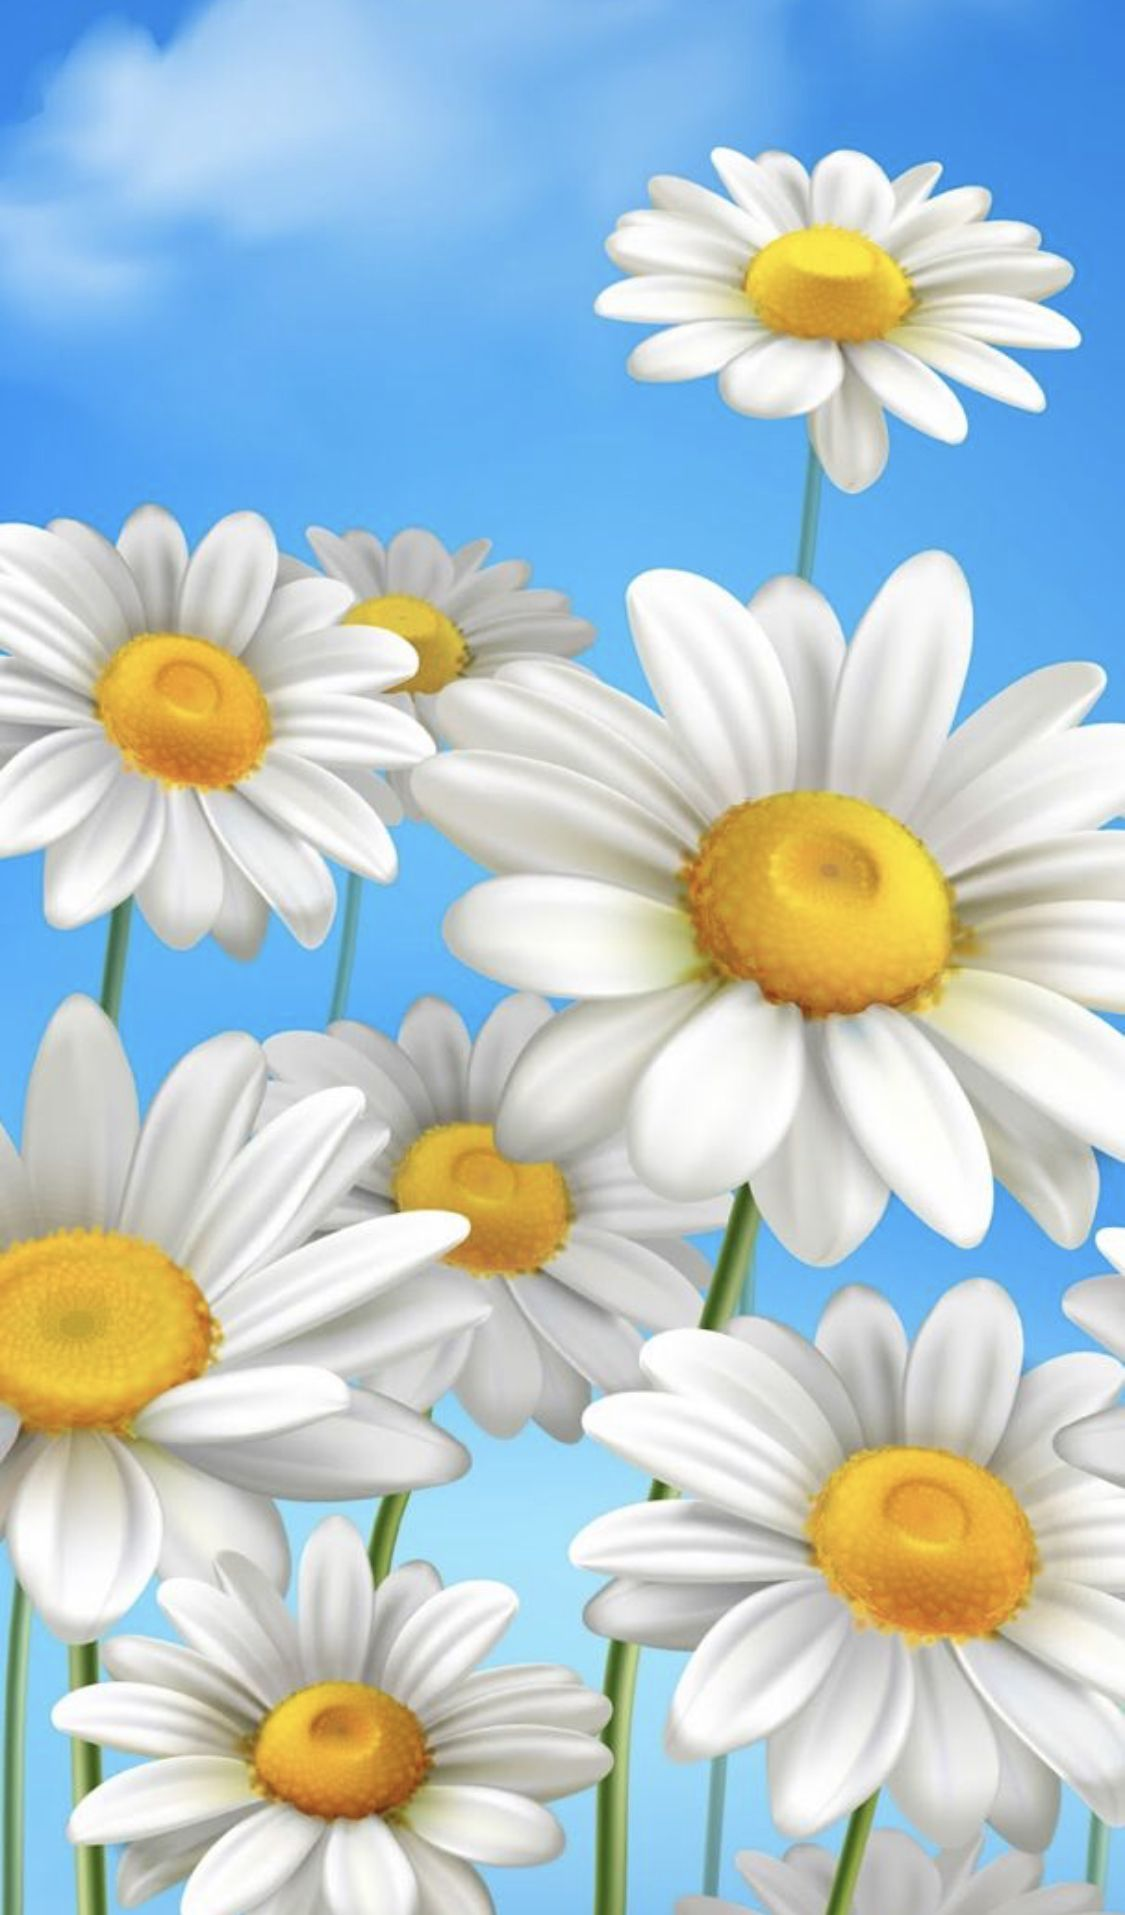 Daisies Daisy wallpaper, Beautiful flowers wallpapers